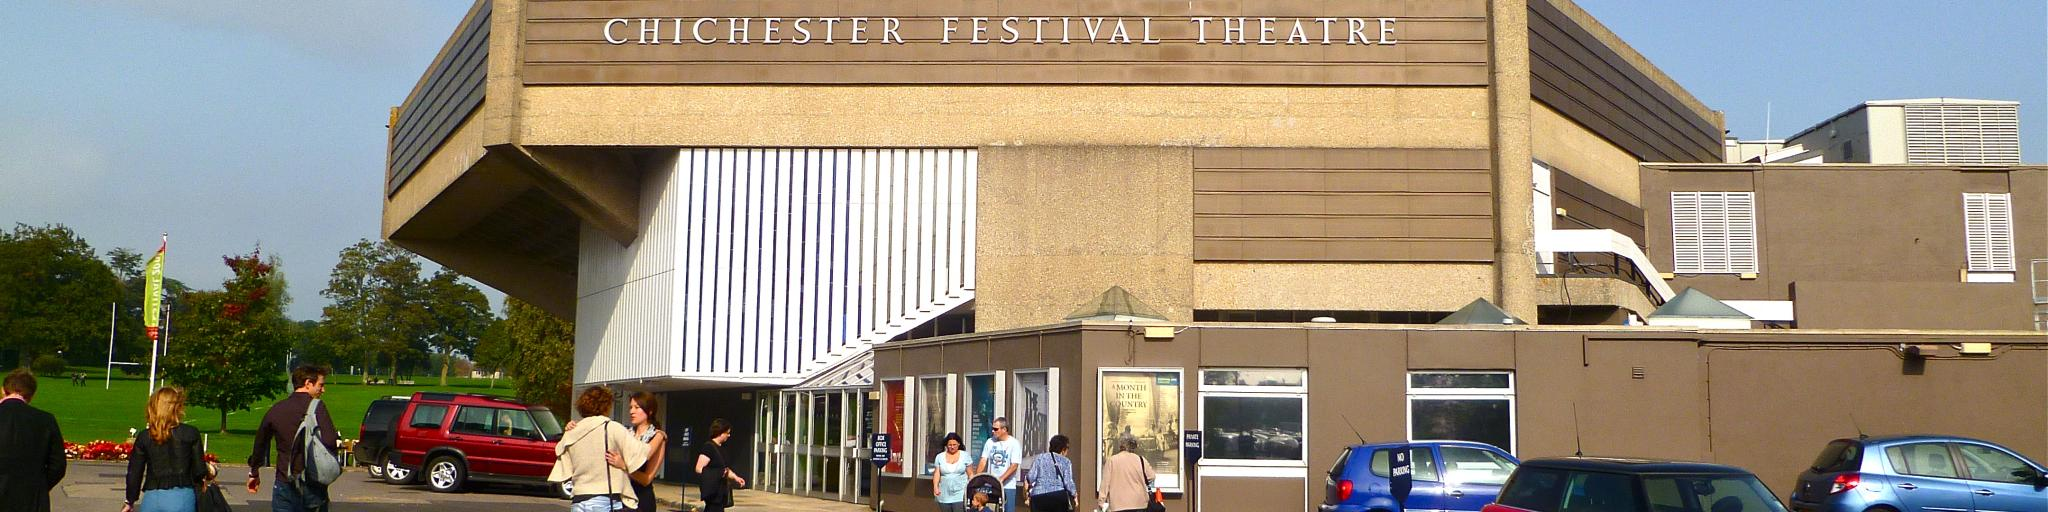 The Chichester Festival Theatre consistently hosts top-notch shows